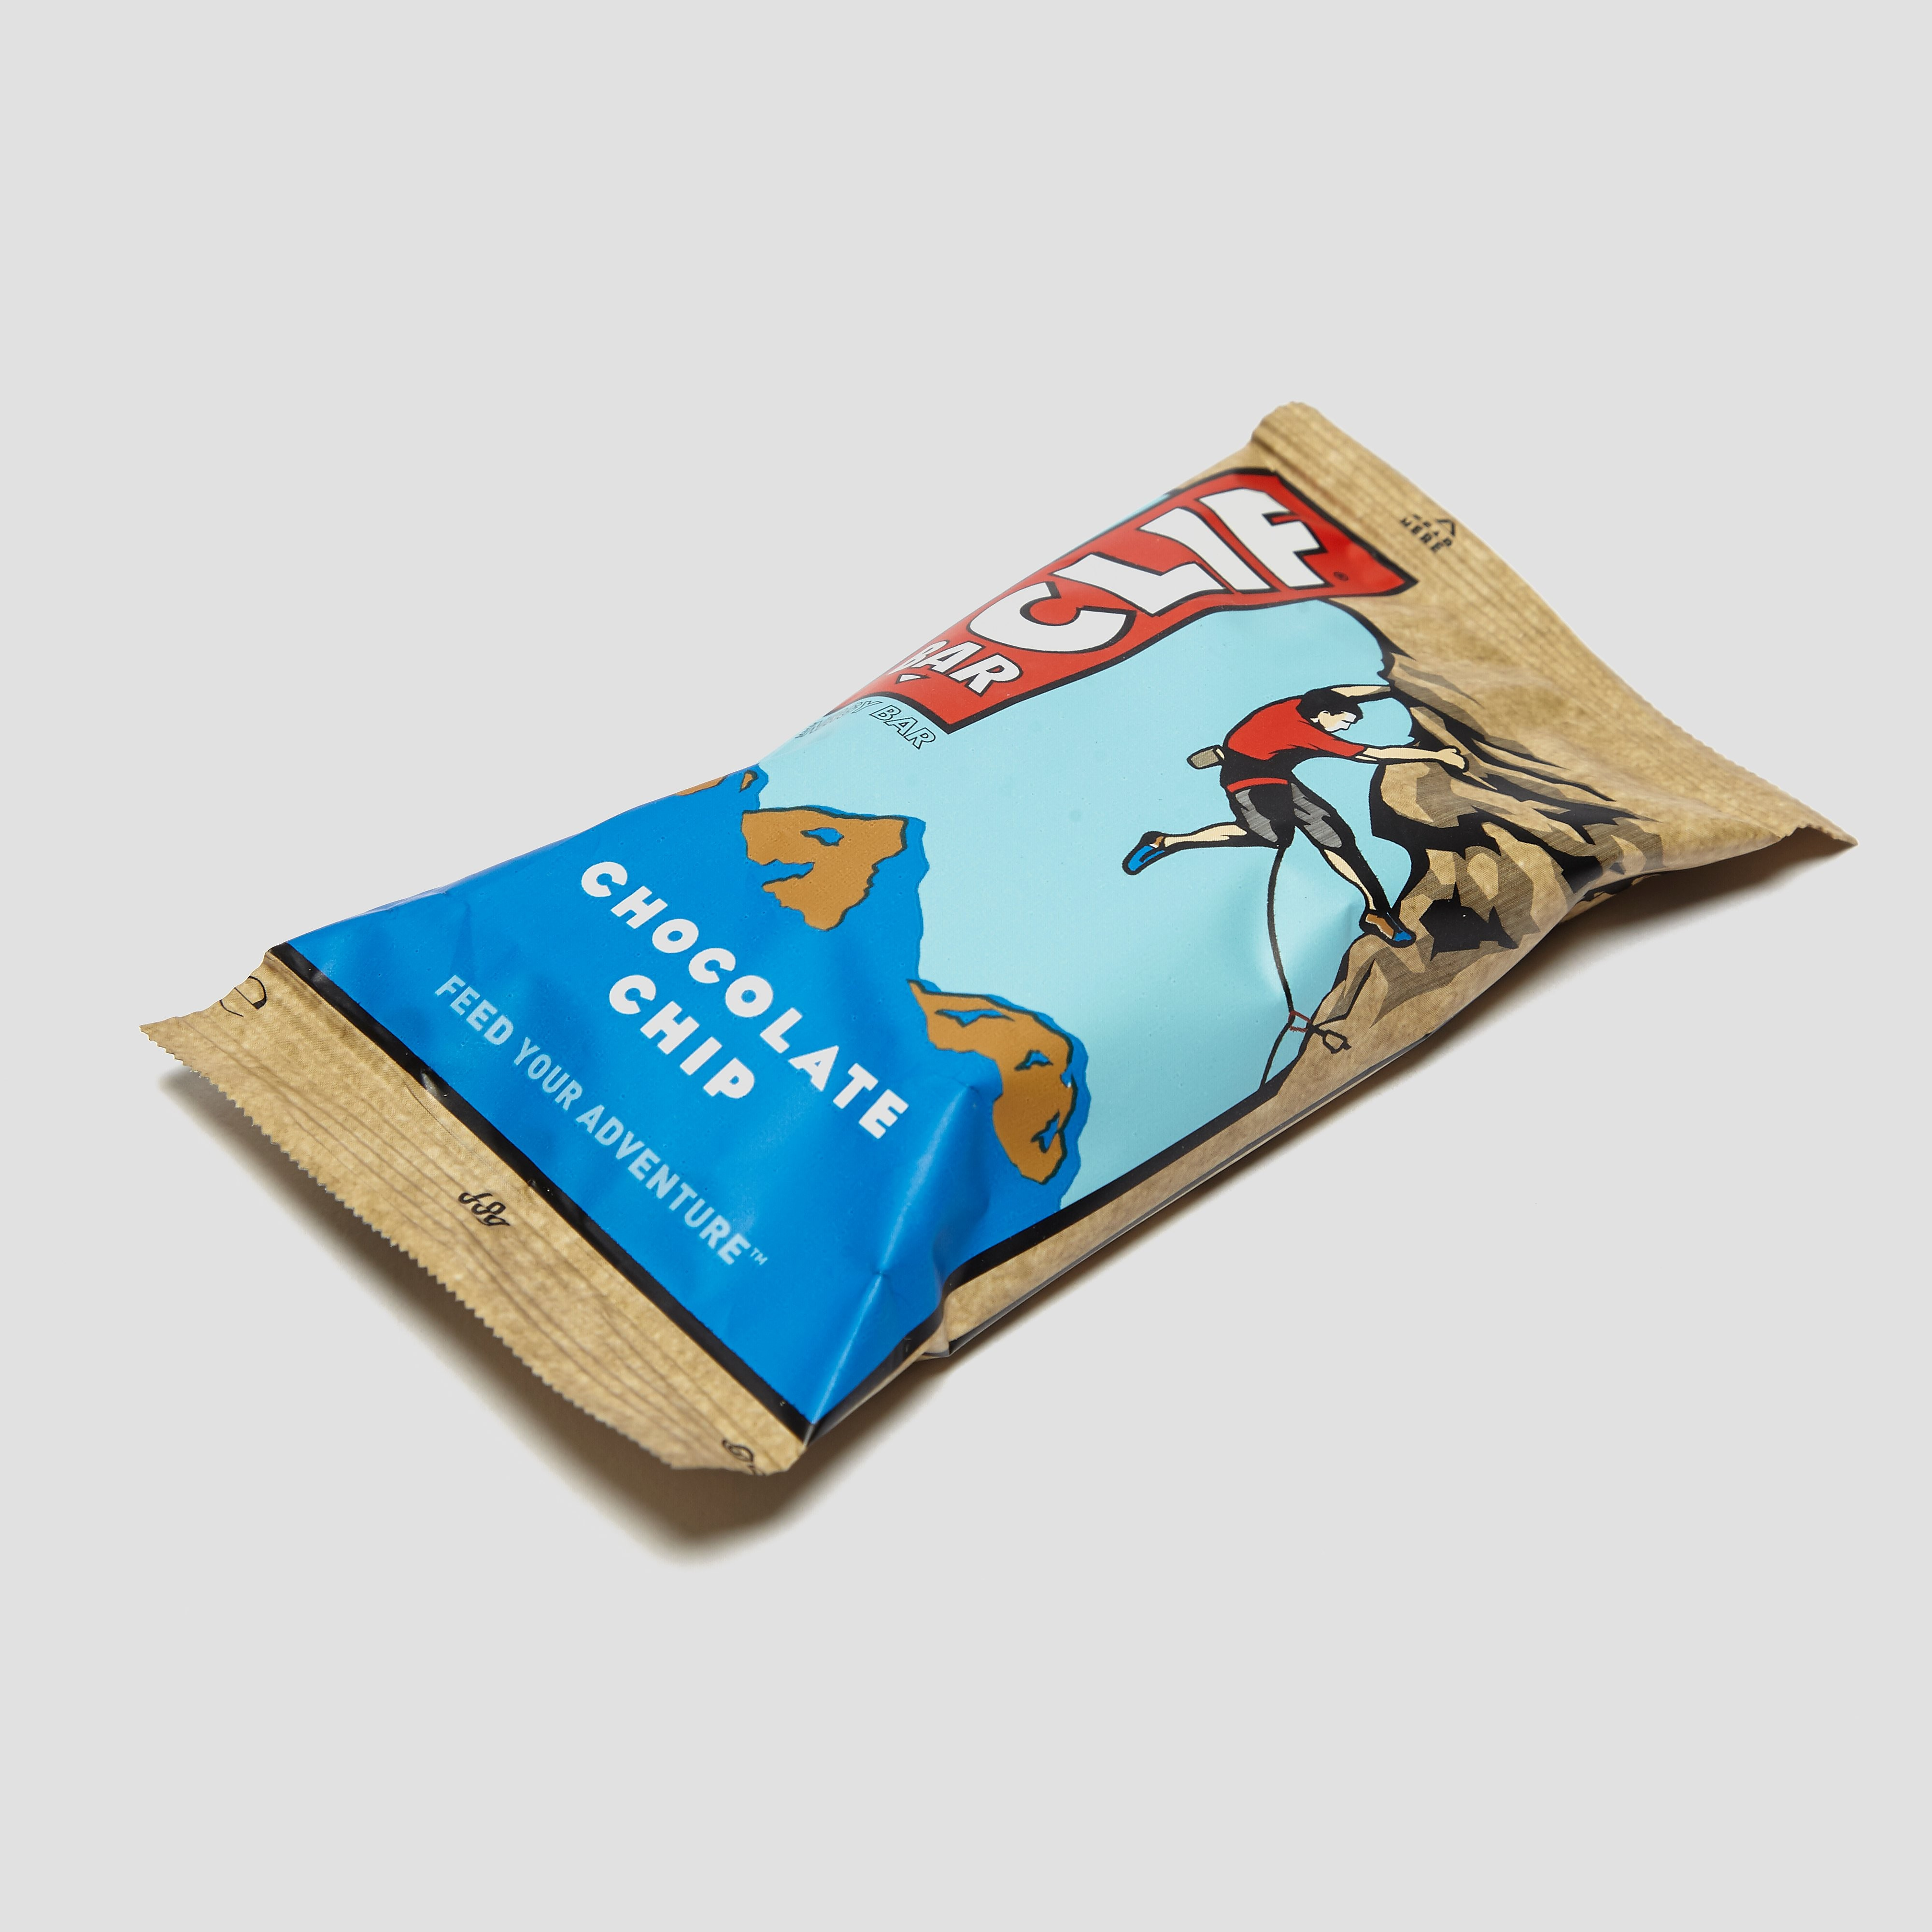 Clif Bar (12 Pack)- Chocolate Chip